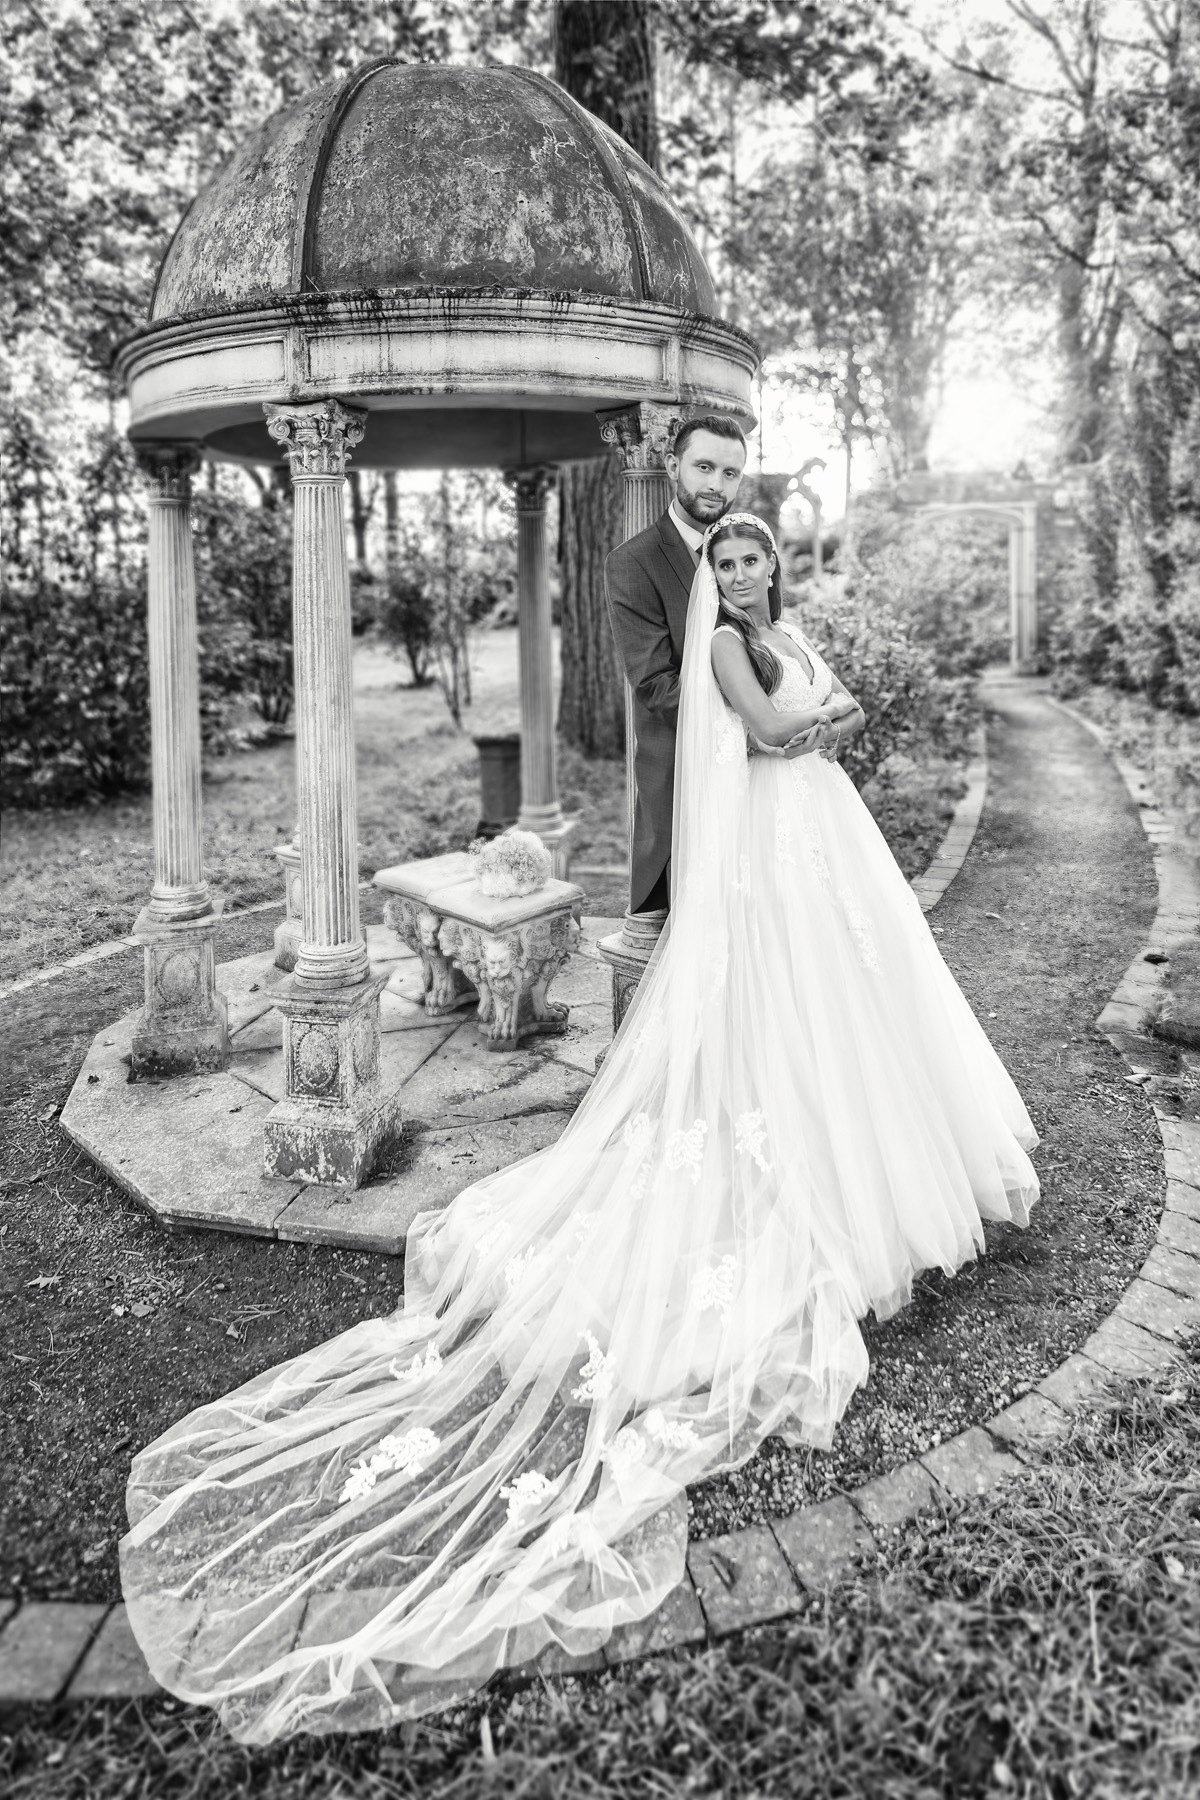 Moxhall wedding photography. Bride and Groom portrait at Moxhall Hall using the Brenizer method